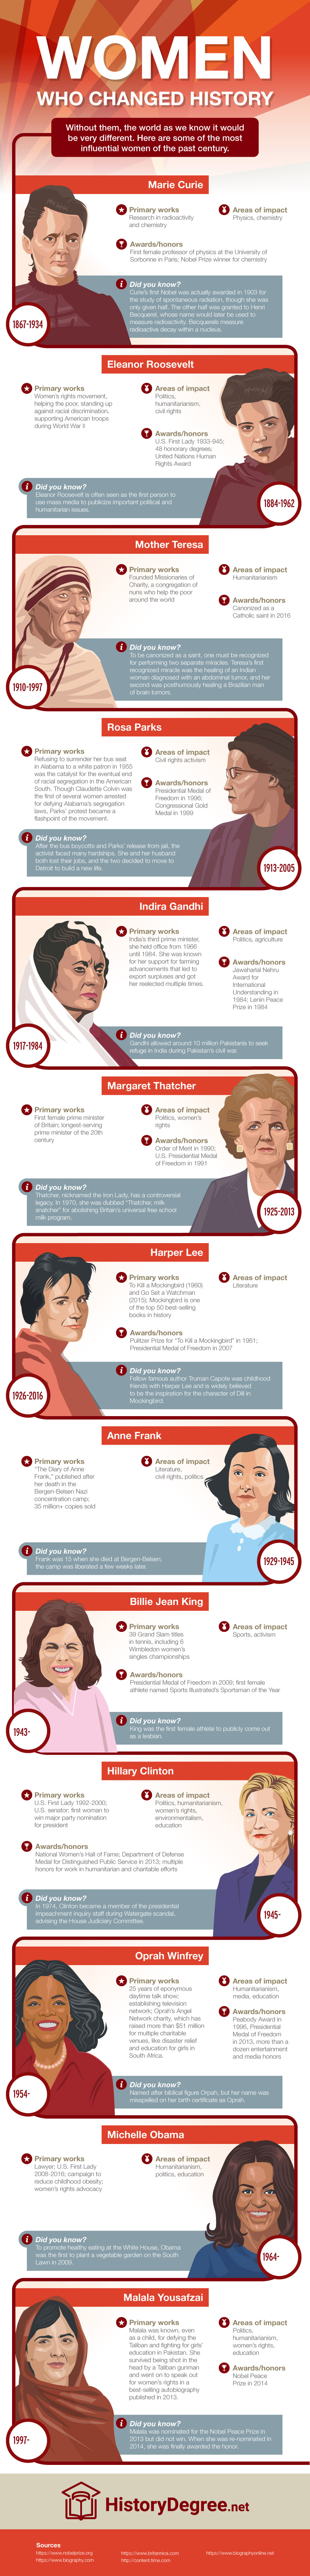 Most-Influential-Women-R1-18-0122